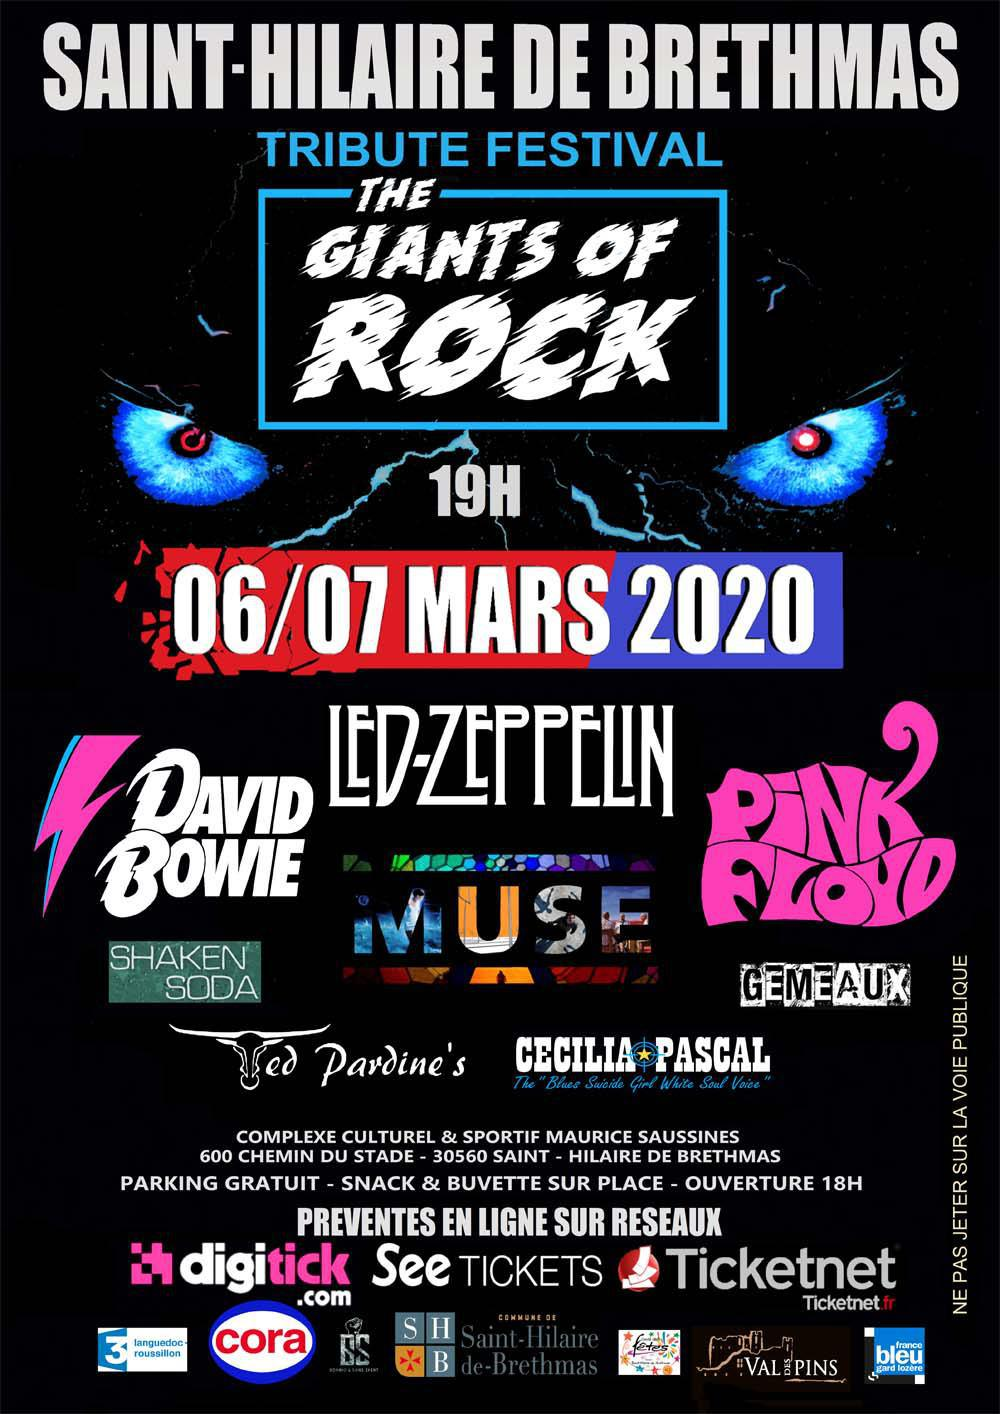 TRIBUTE FESTIVAL 2020 '' THE GIANTS OF ROCK '' 3 ème Edition Saint-Hilaire de Brethmas .